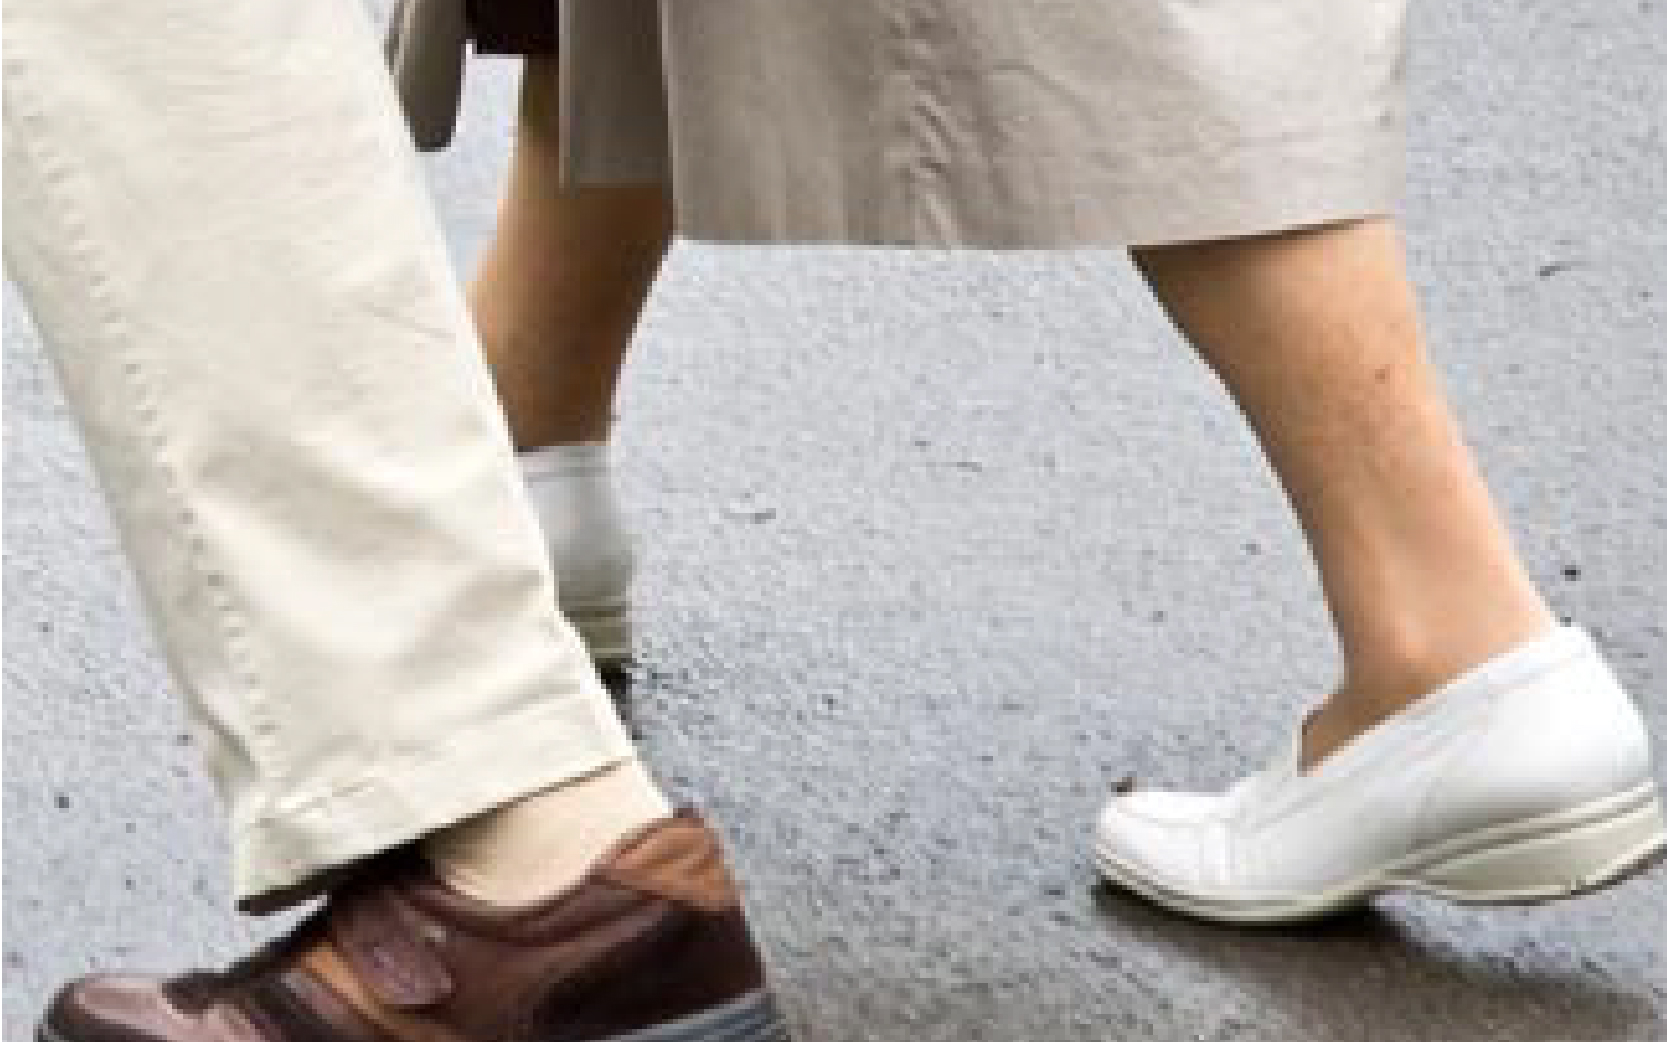 Close-up of two people's feet walking